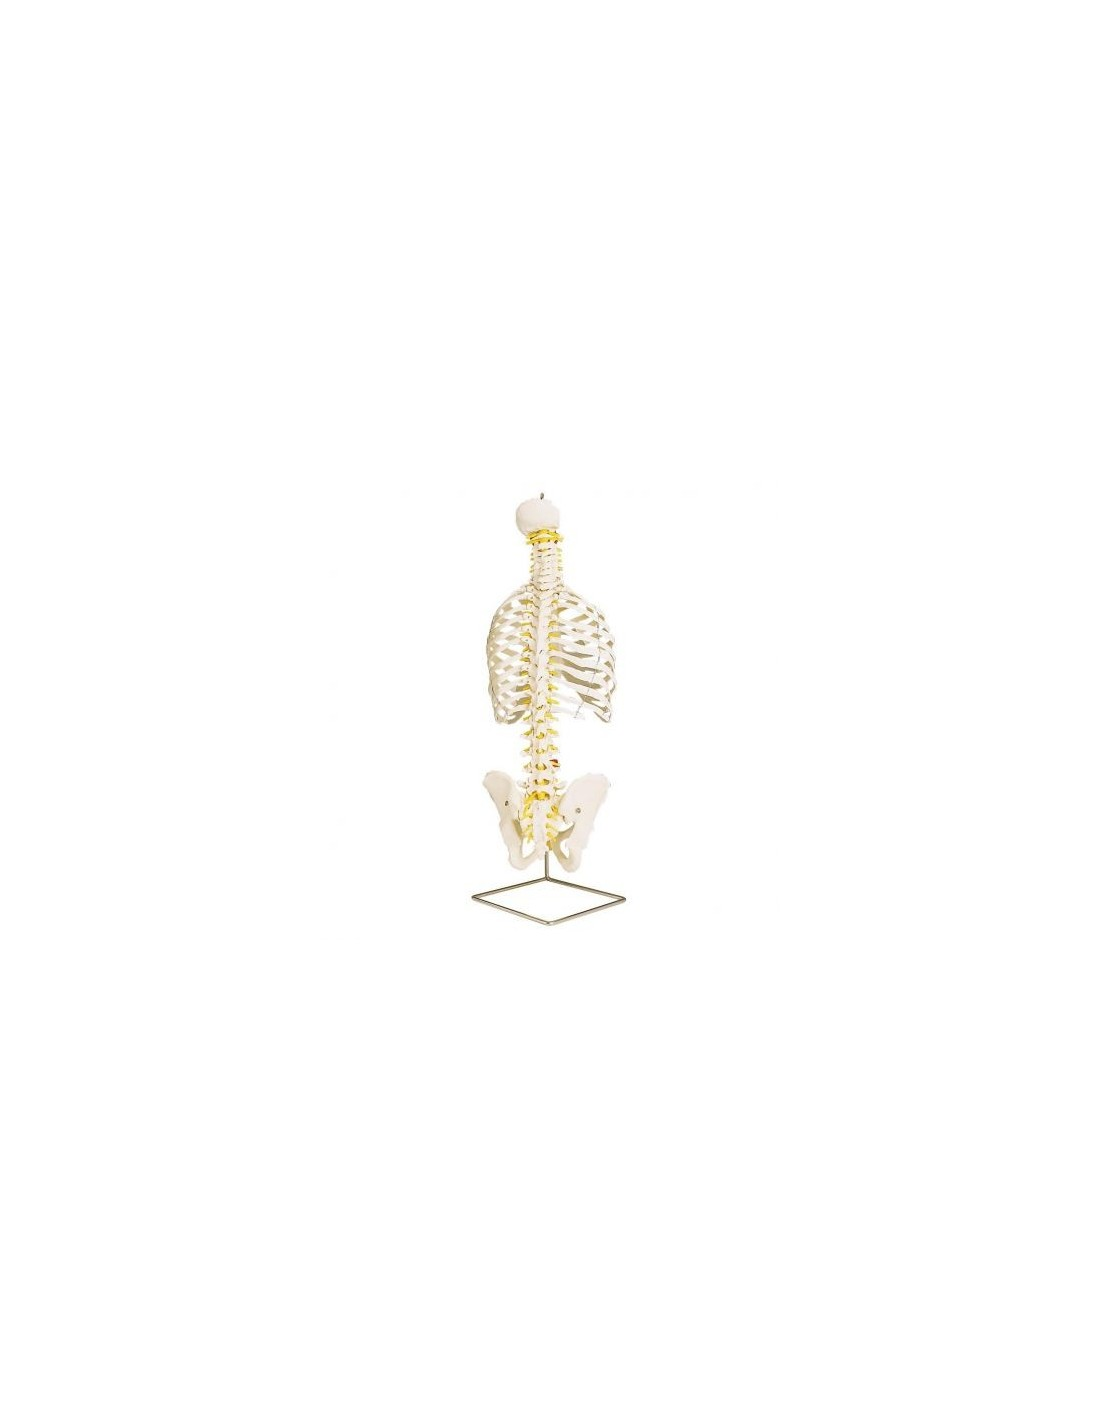 Anatomical Functional Arm And Arm Articulation